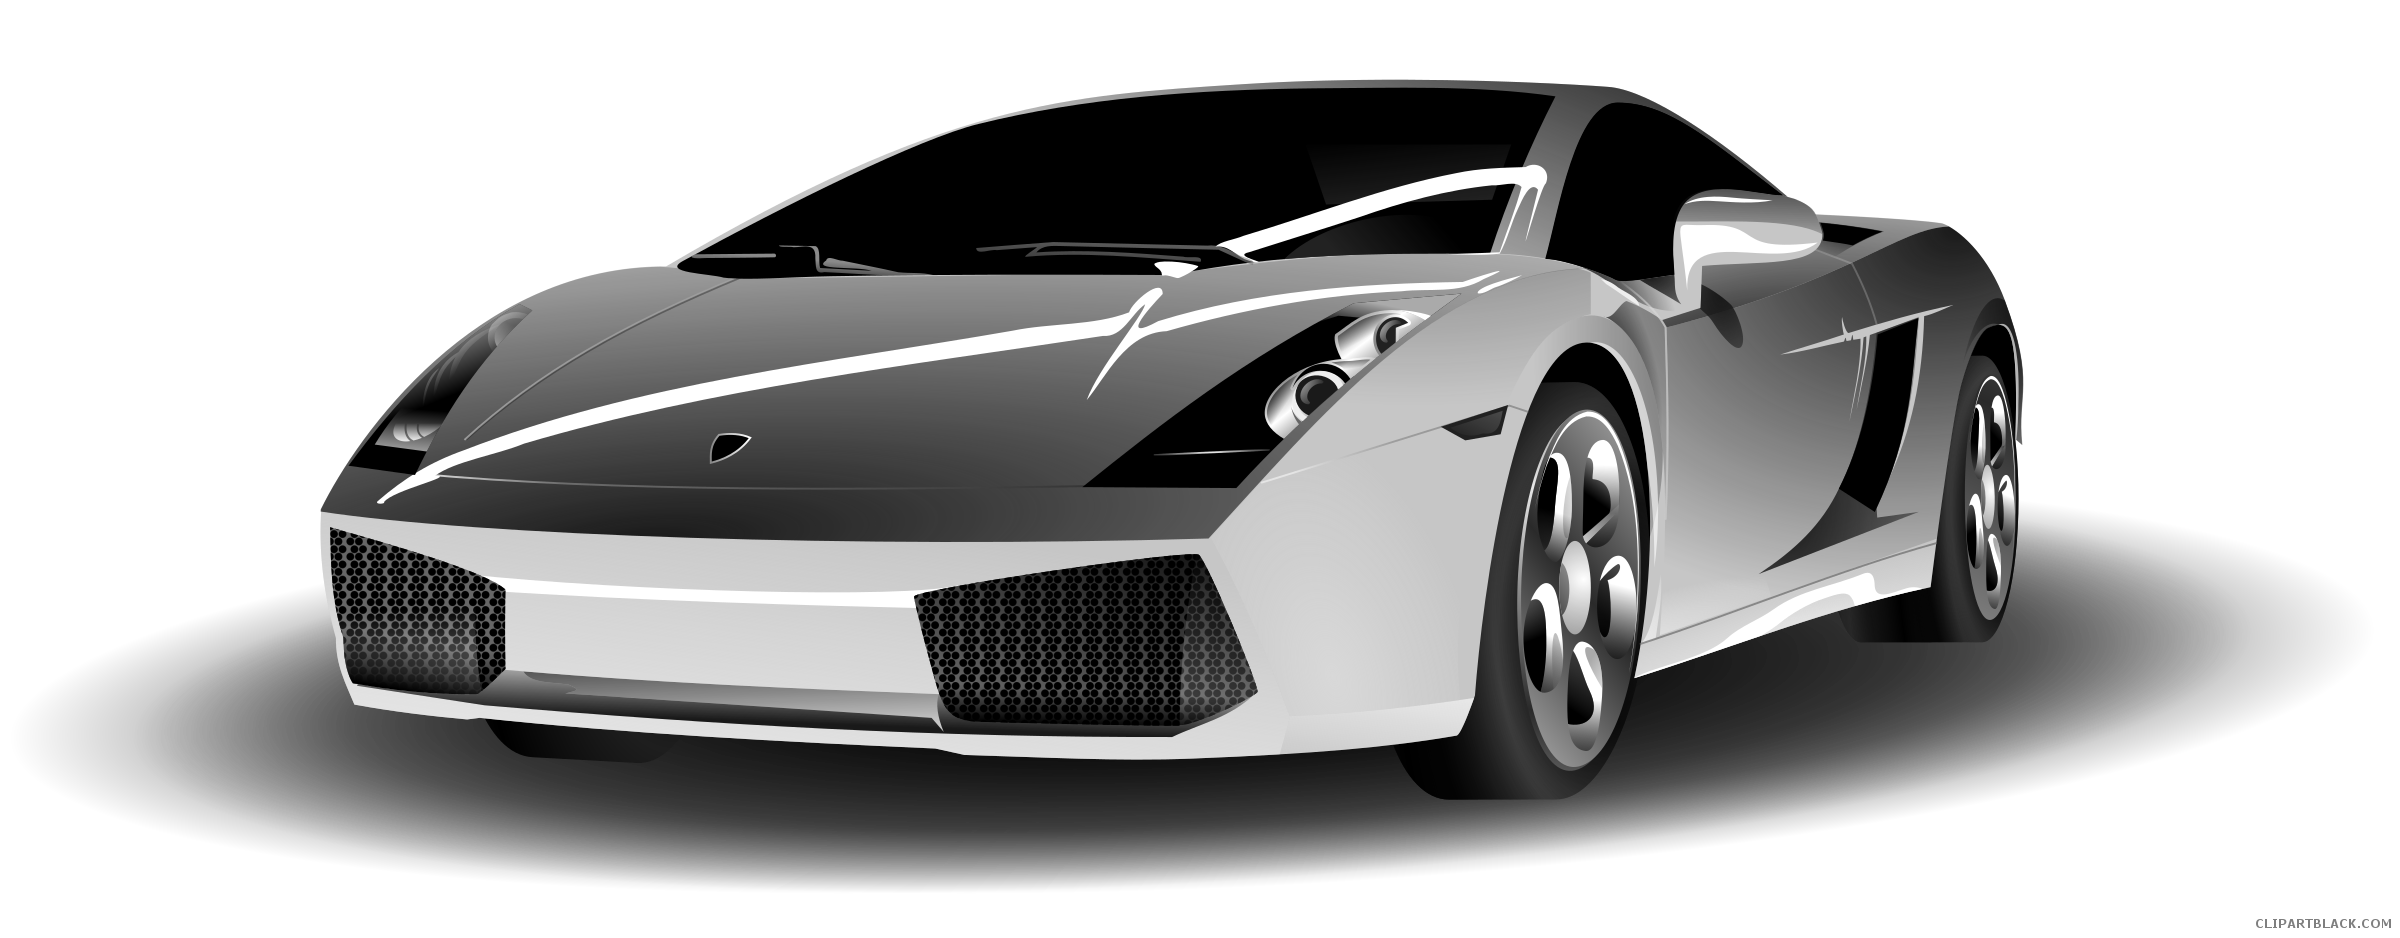 Sports Car Clipart - ClipartBlack.com picture royalty free library